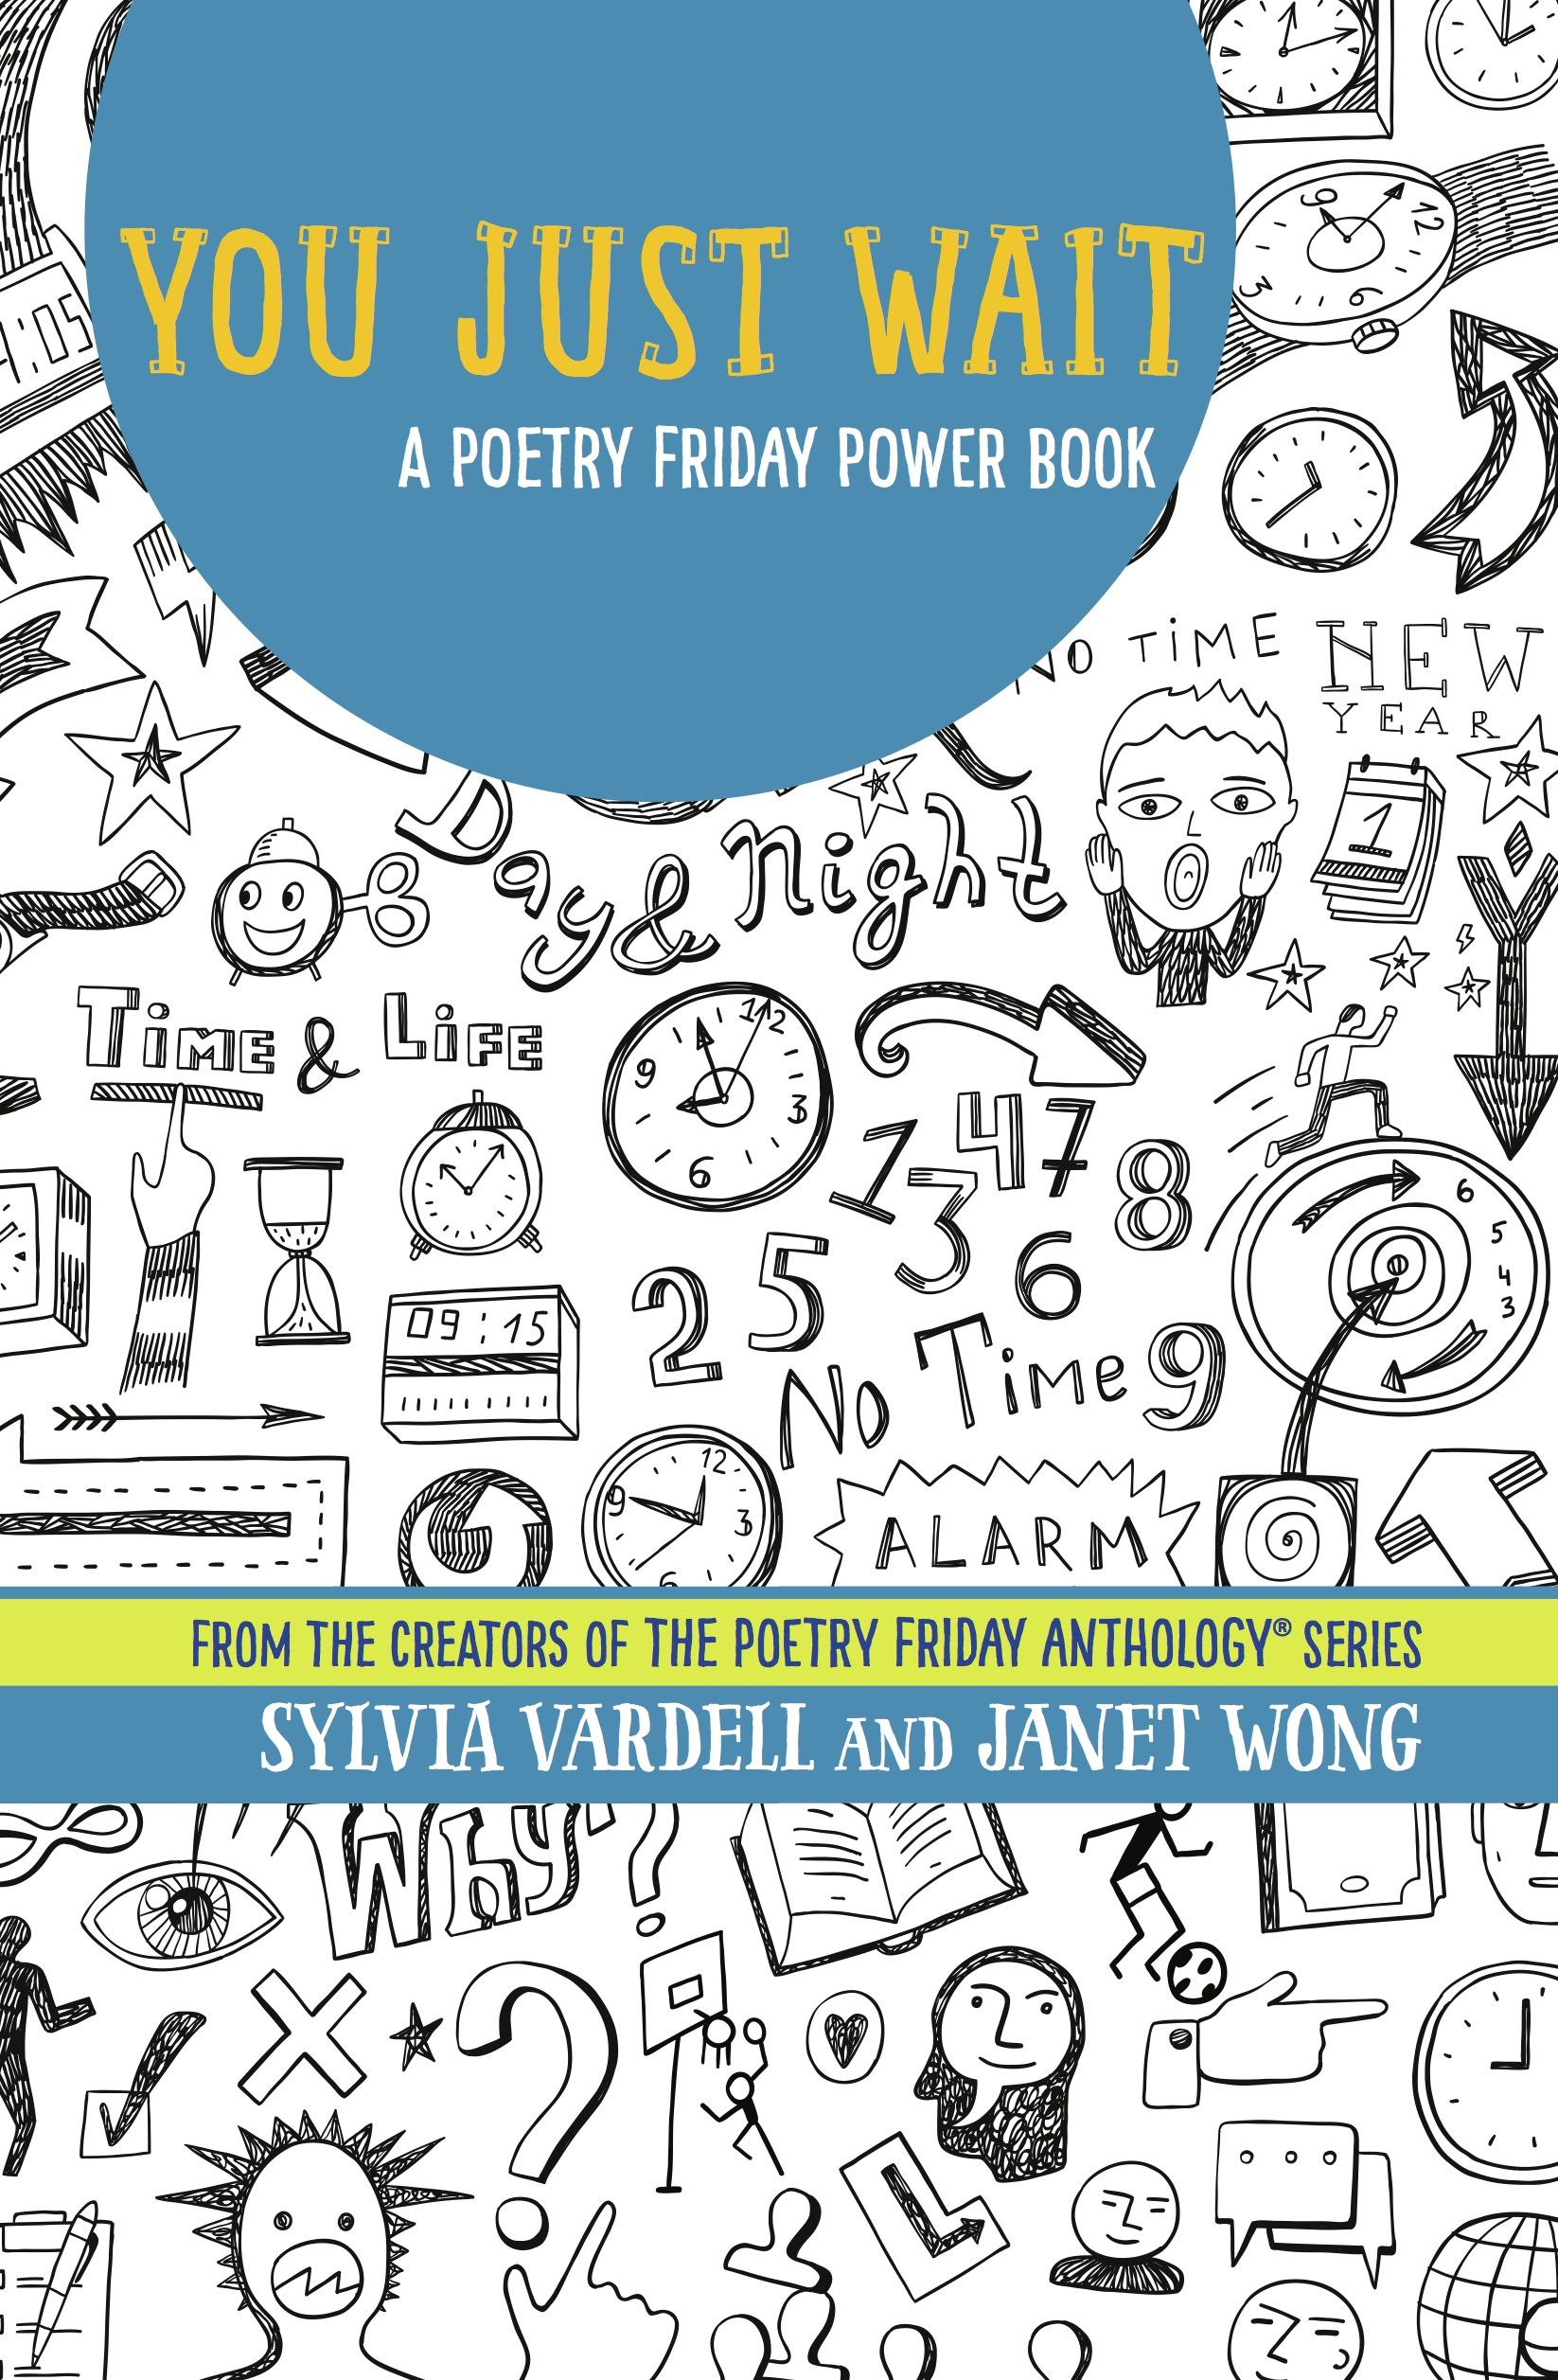 You Just Wait A Poetry Friday Power Book For Teens And